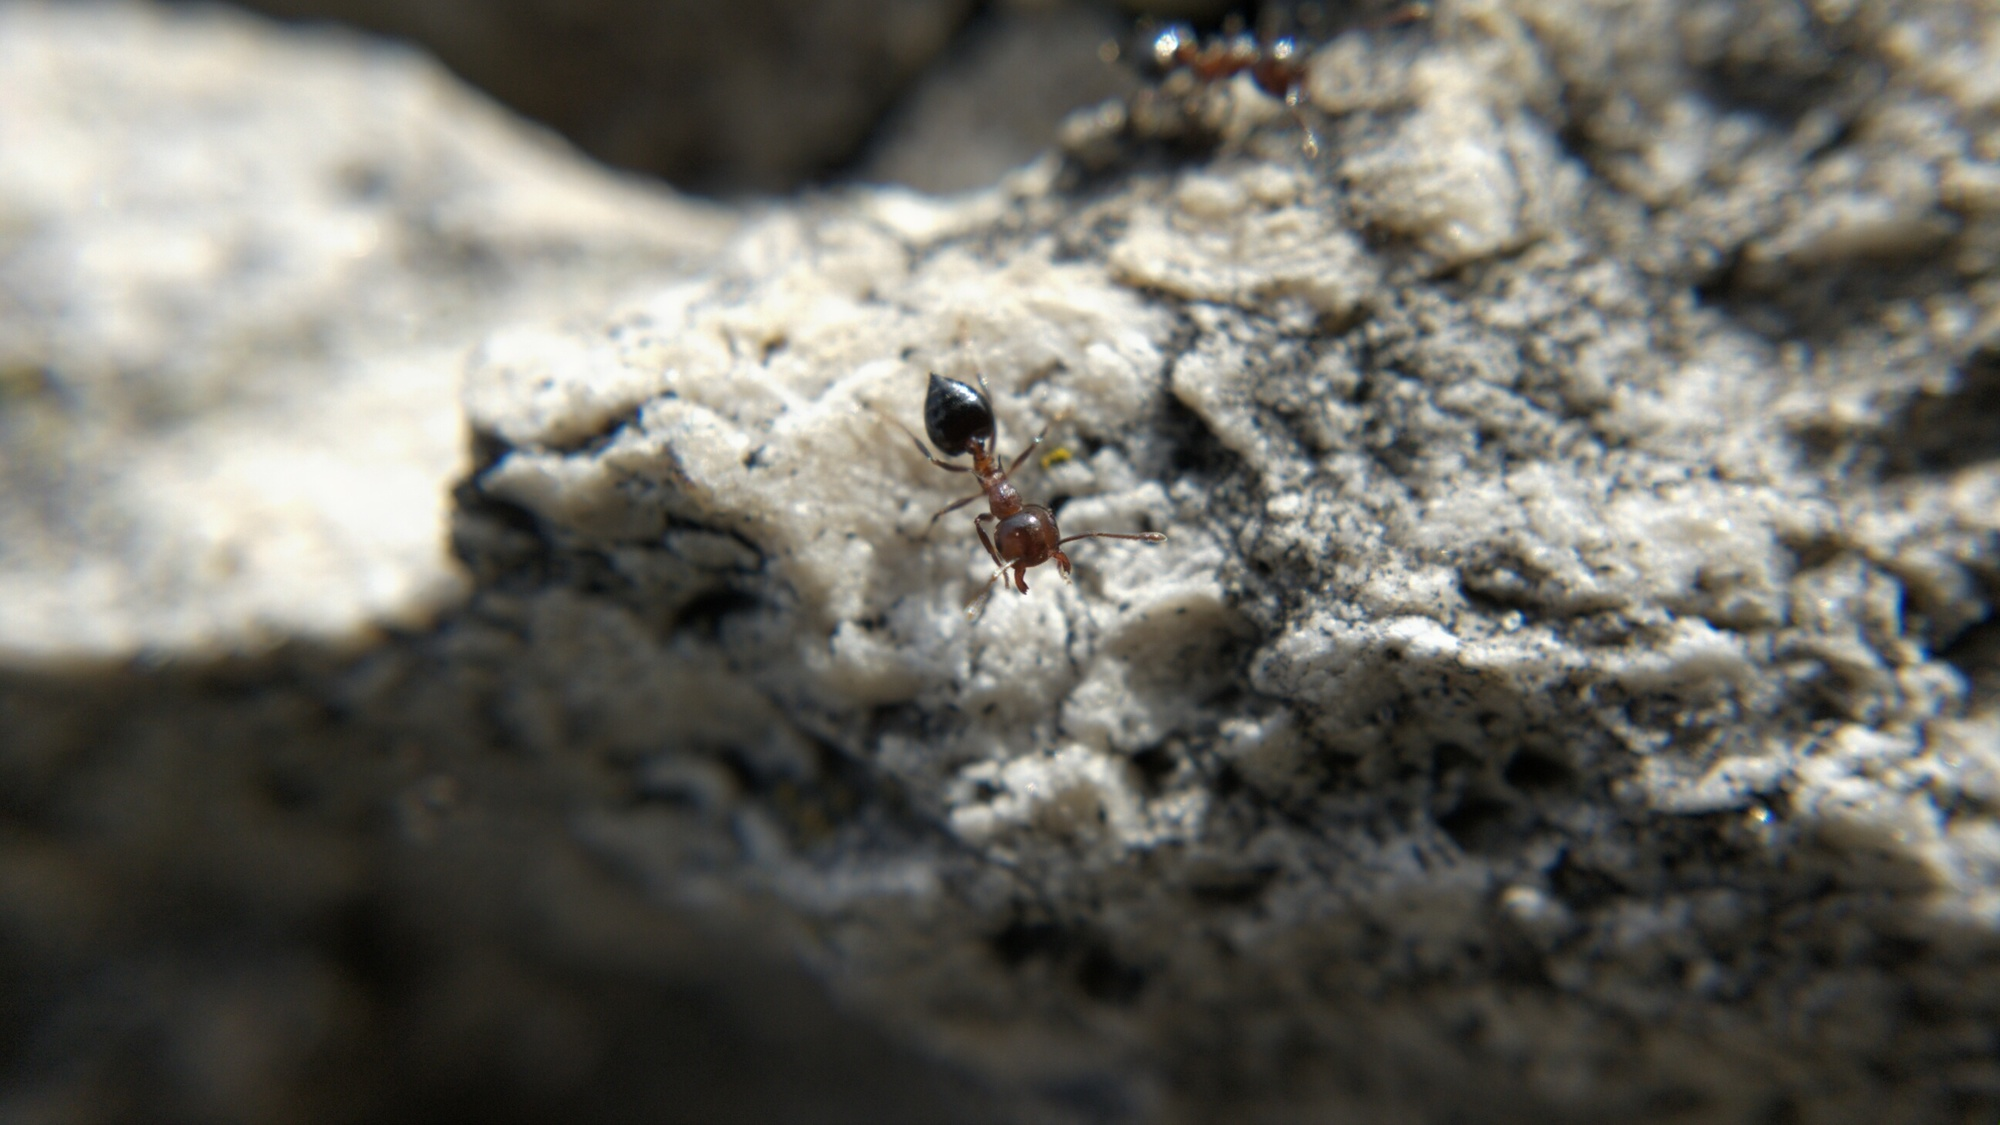 A Crematogaster ant with its jaws open